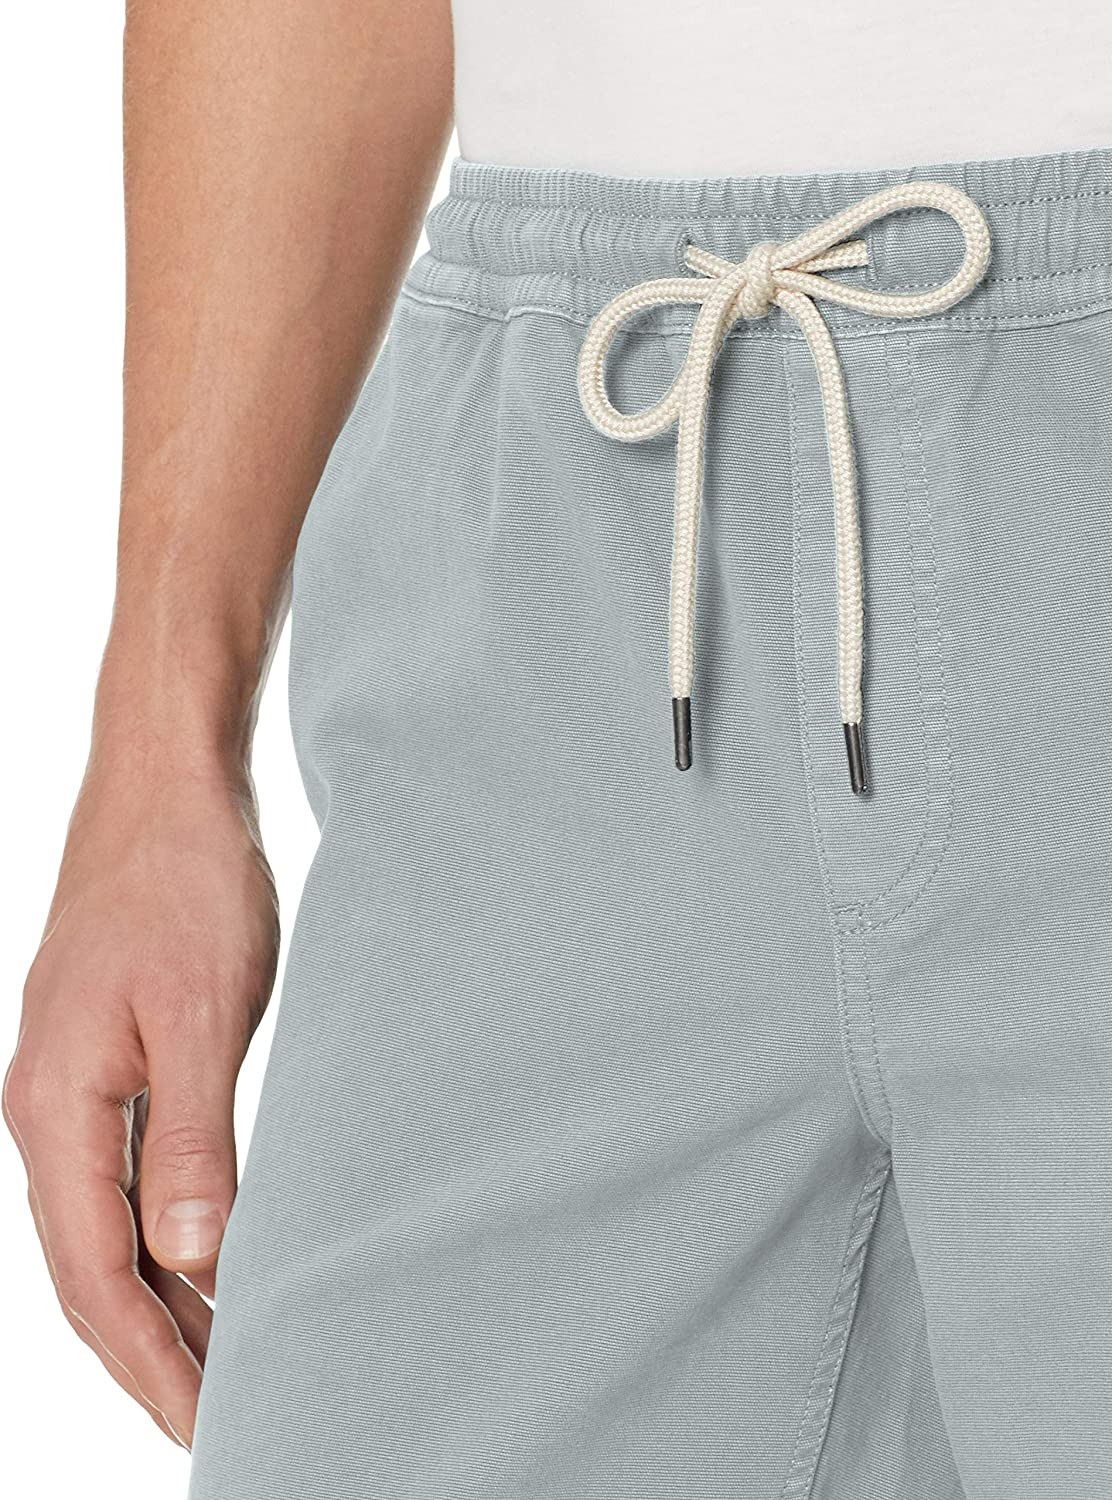 Marque Goodthreads 11 inch Inseam Pull-on Stretch Canvas Short Homme